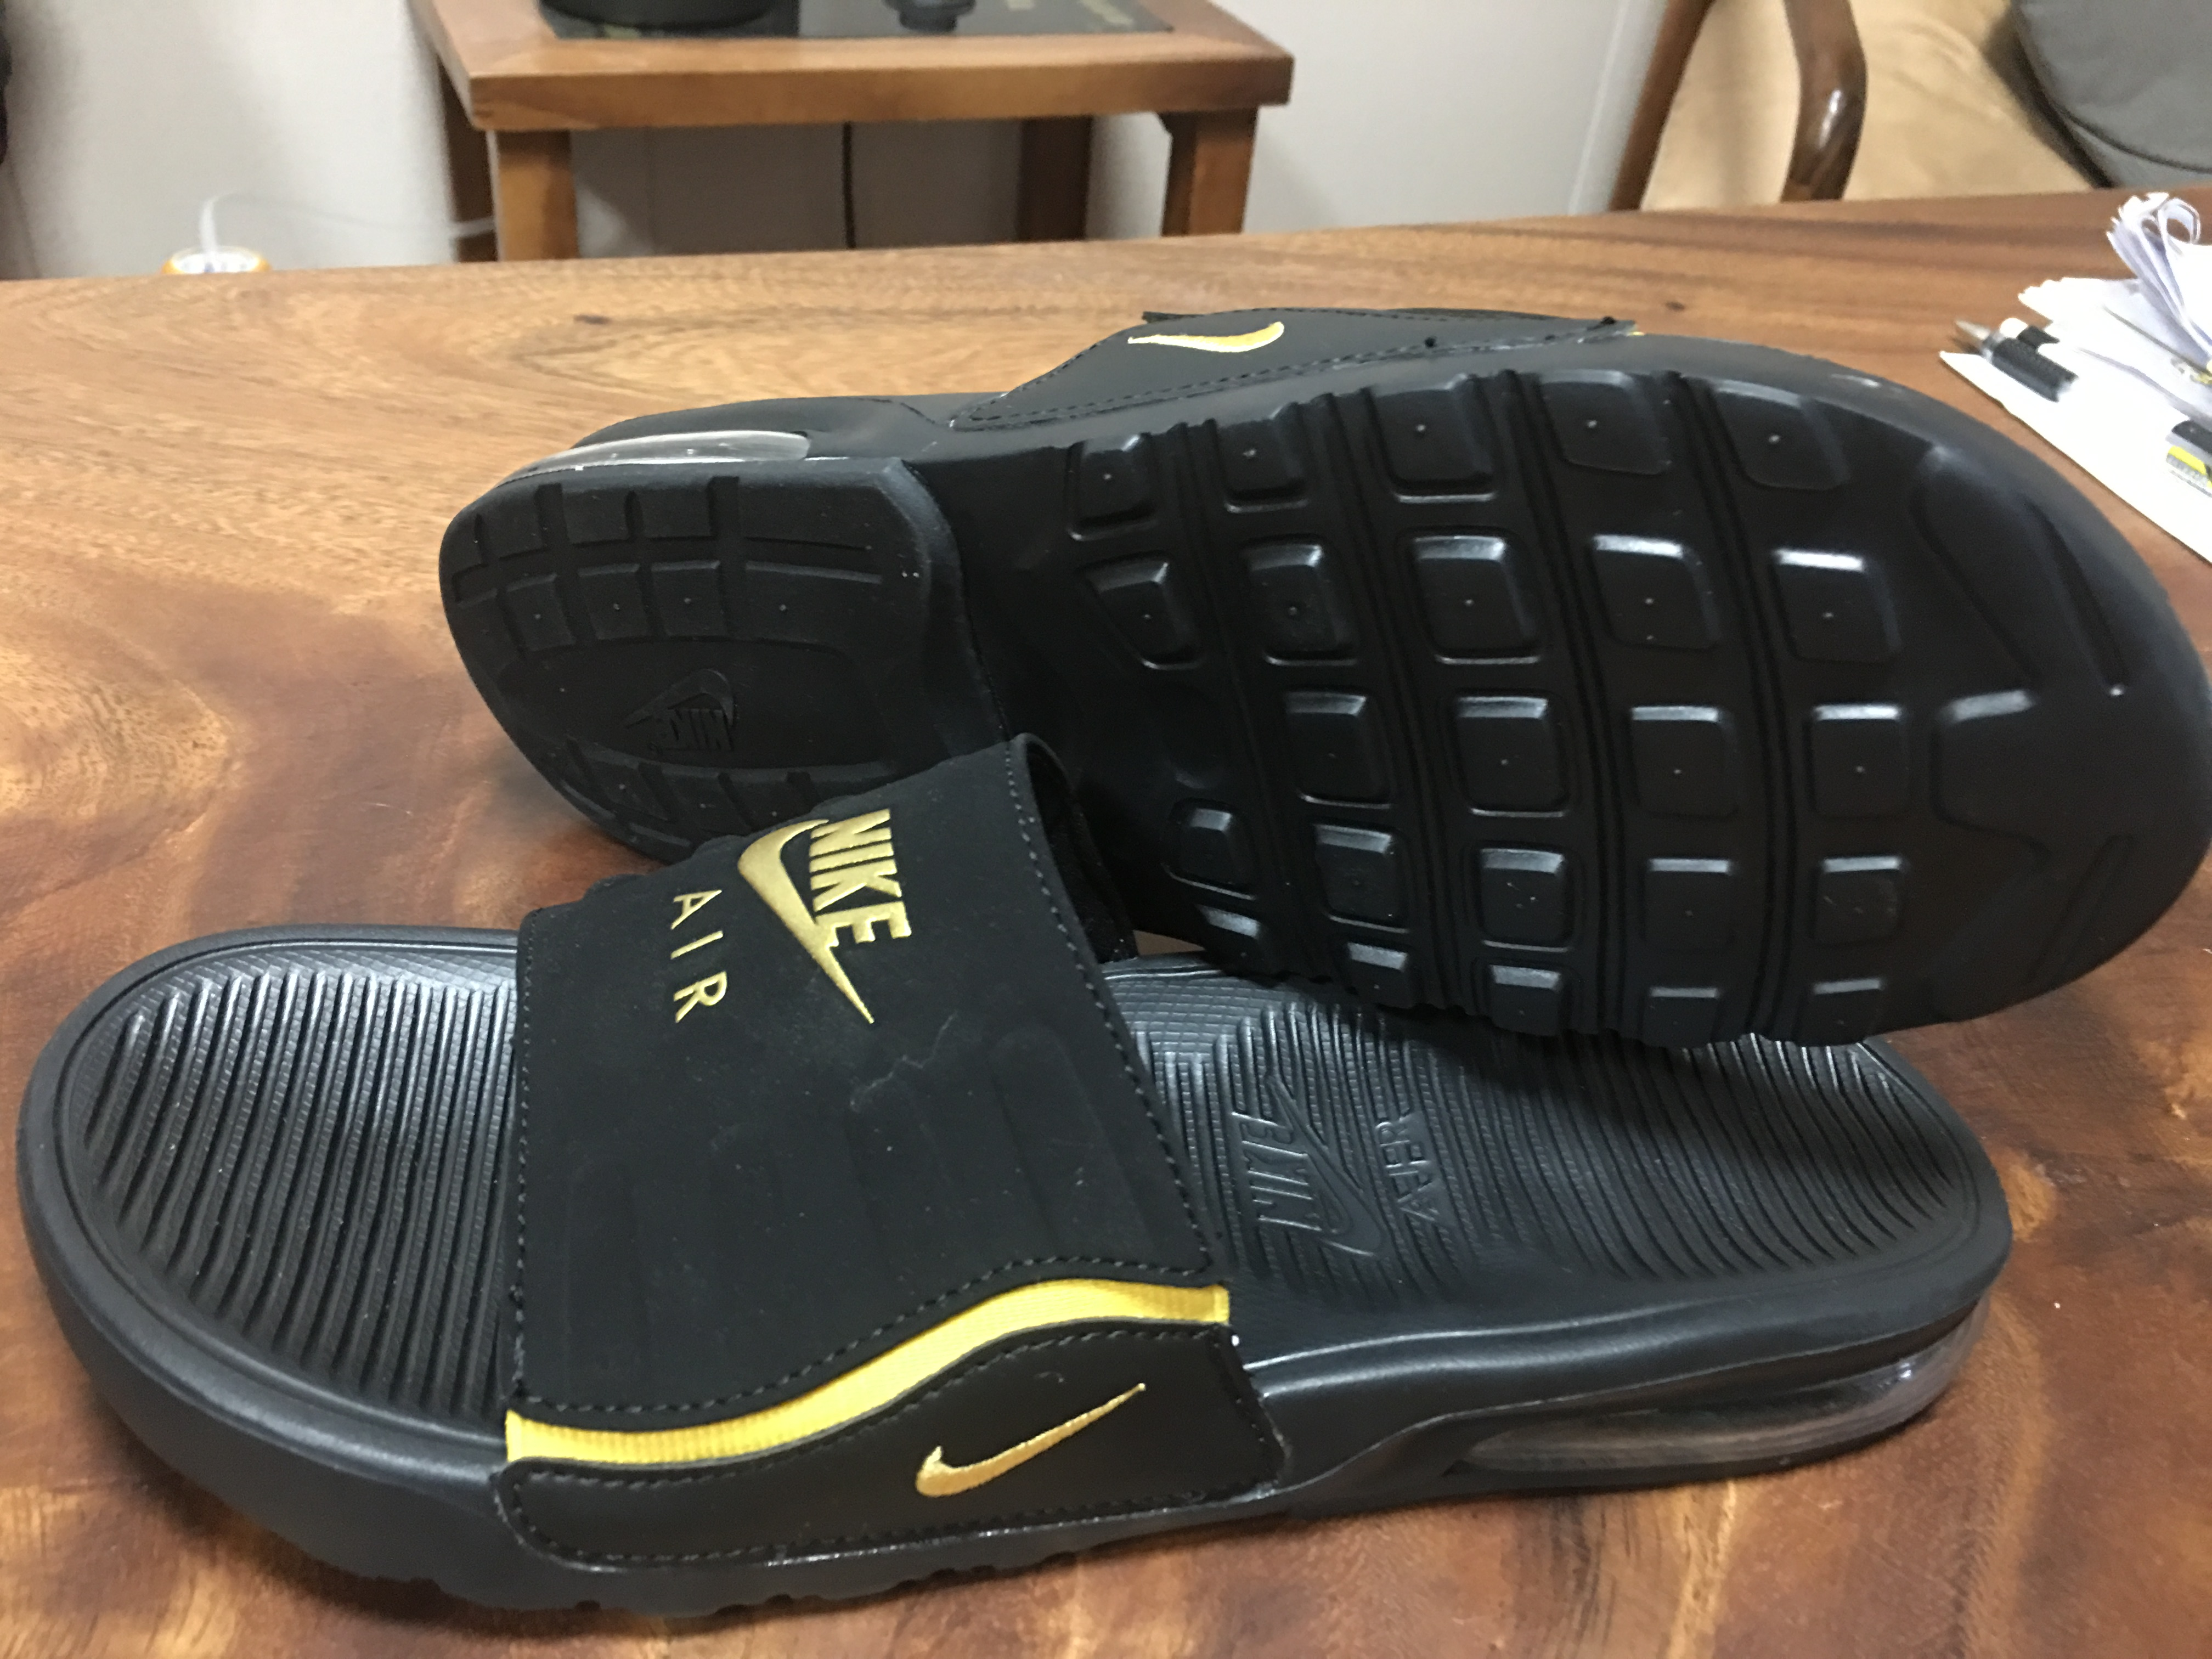 2020 Nike Air Max 95 Hydro Black Gold Sandal